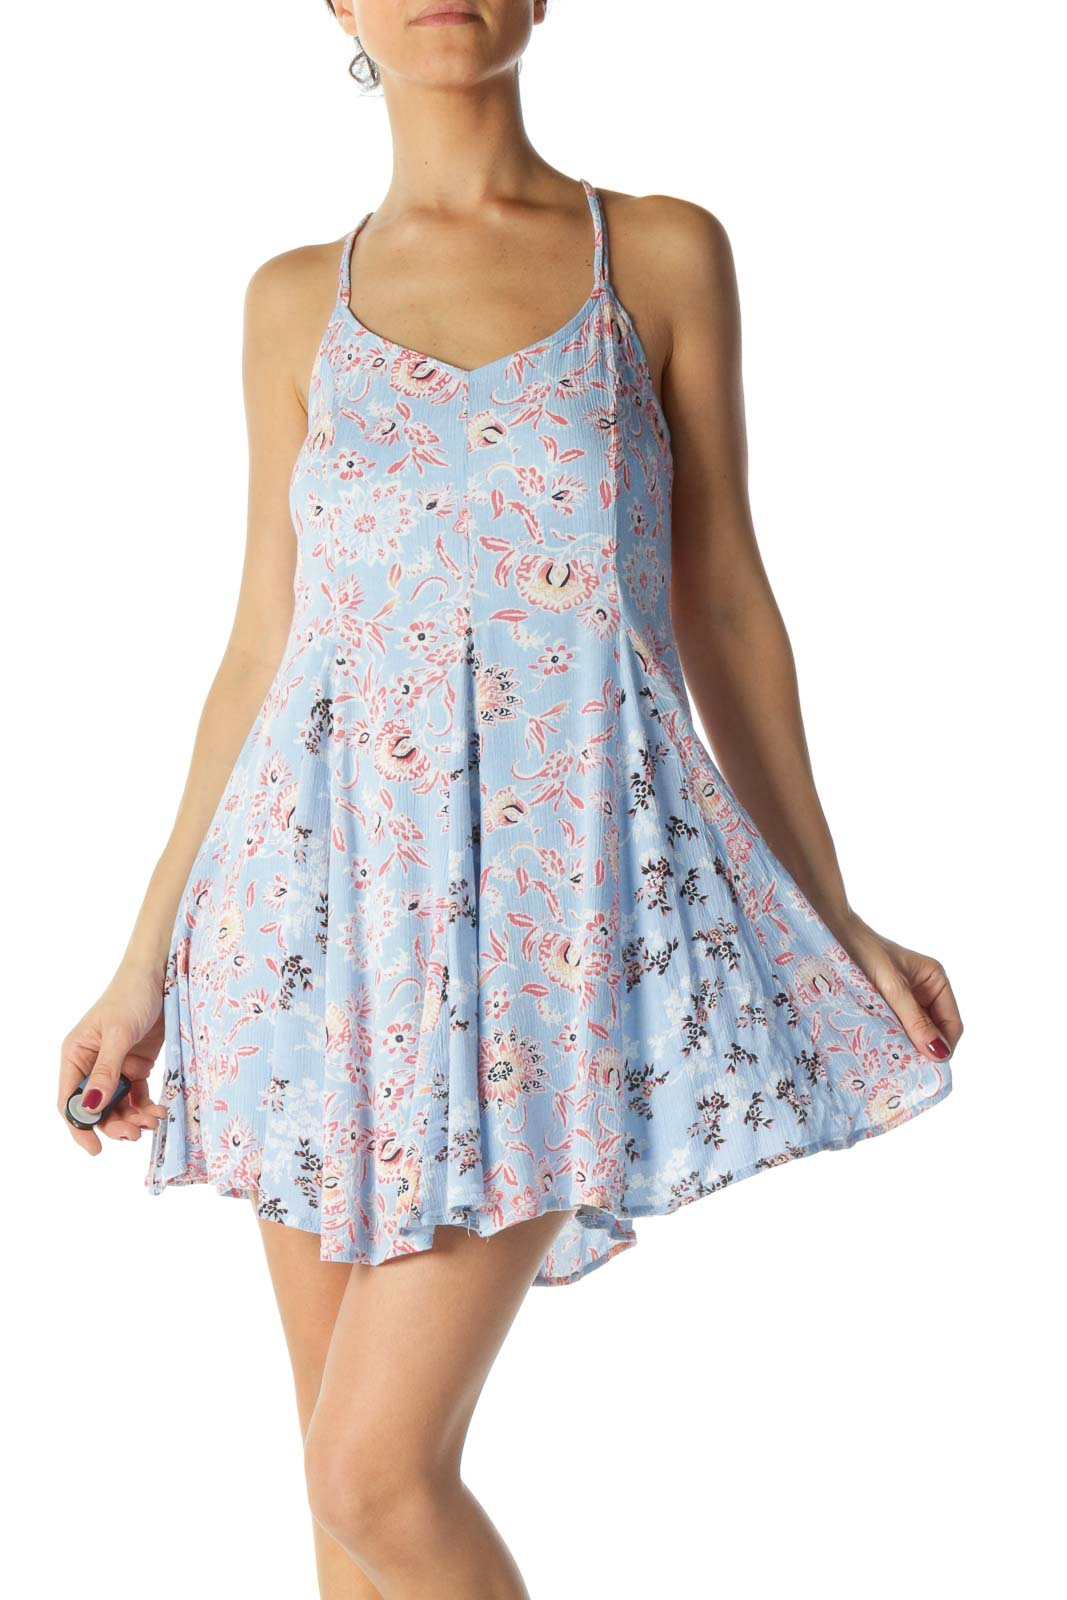 Blue and Pink Floral Print Dress Front